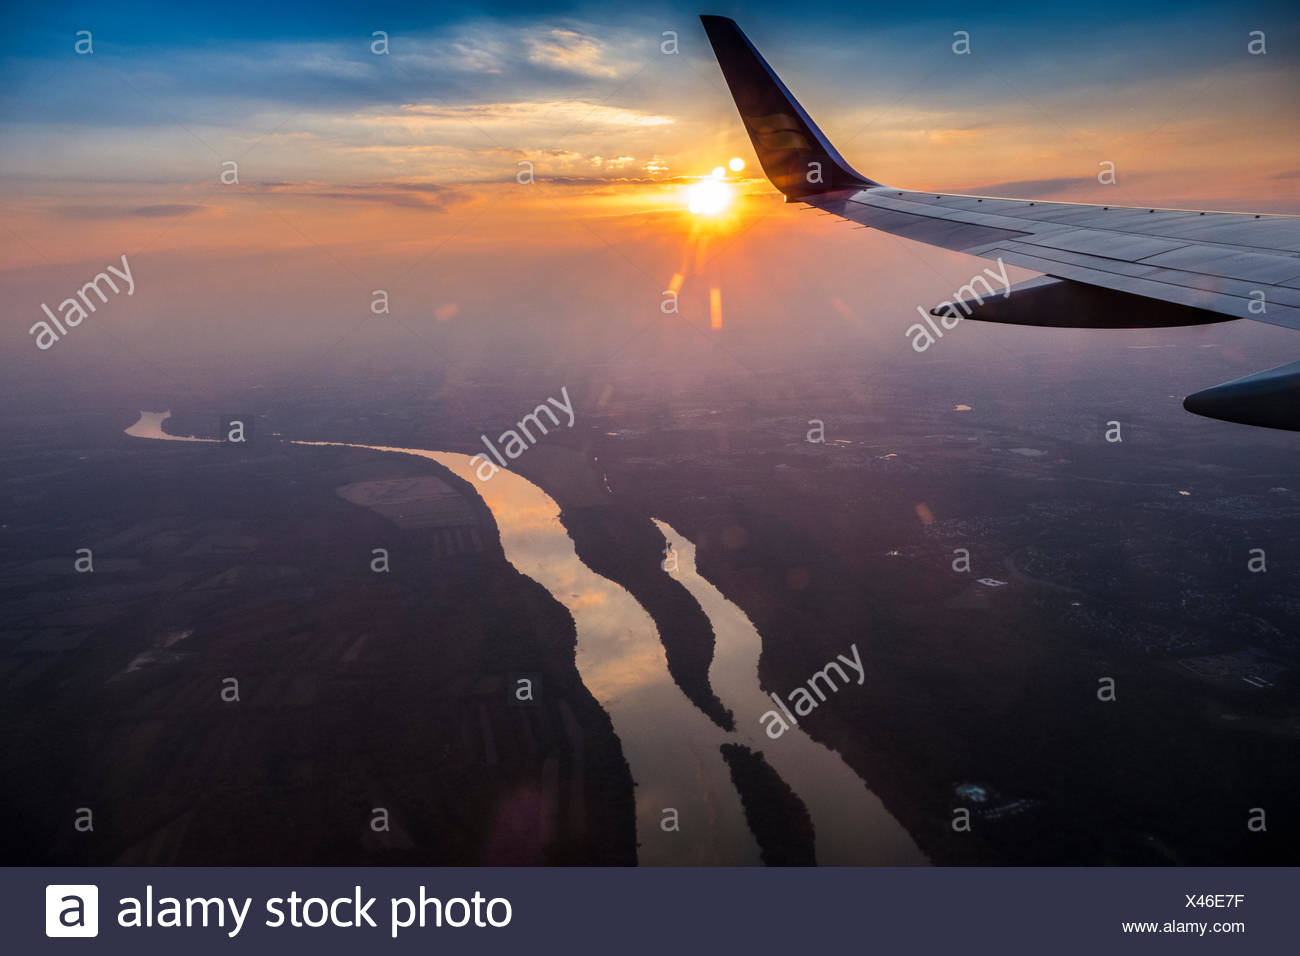 A Boeing 757 crossing the Potomac River on final approach to Dulles International Airport. - Stock Image